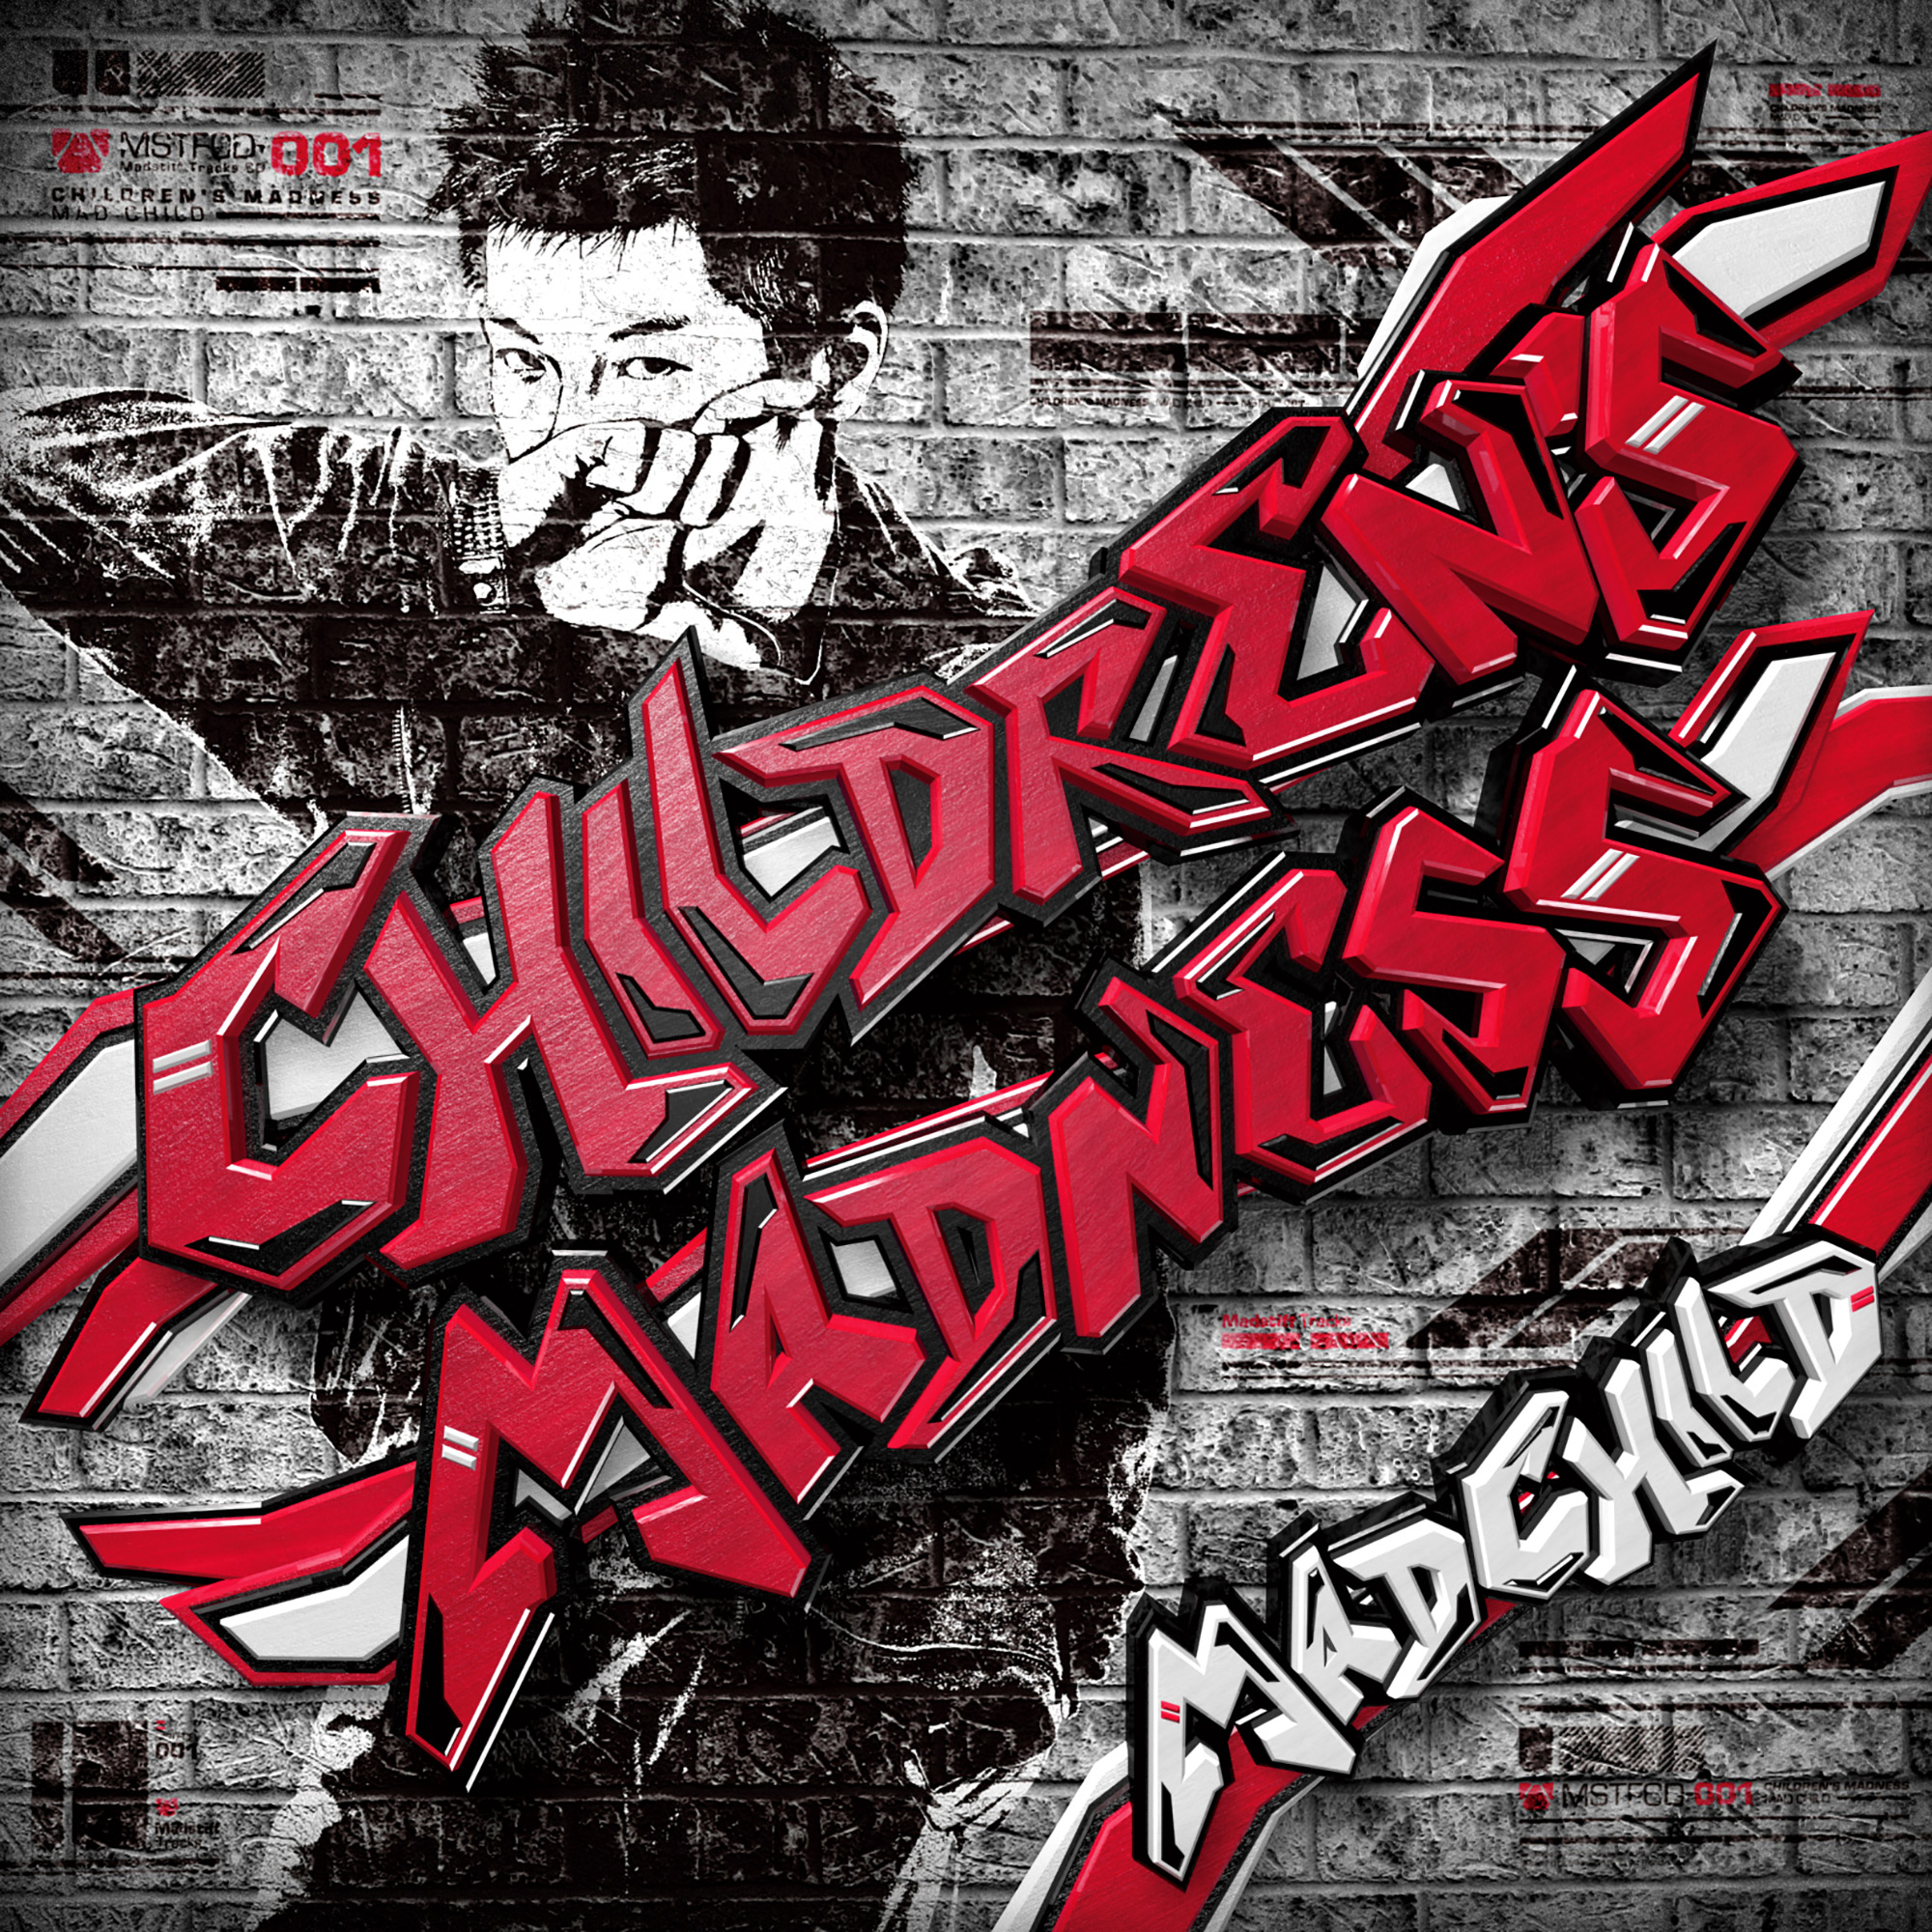 MAD CHILD - CHILDREN'S MADNESS